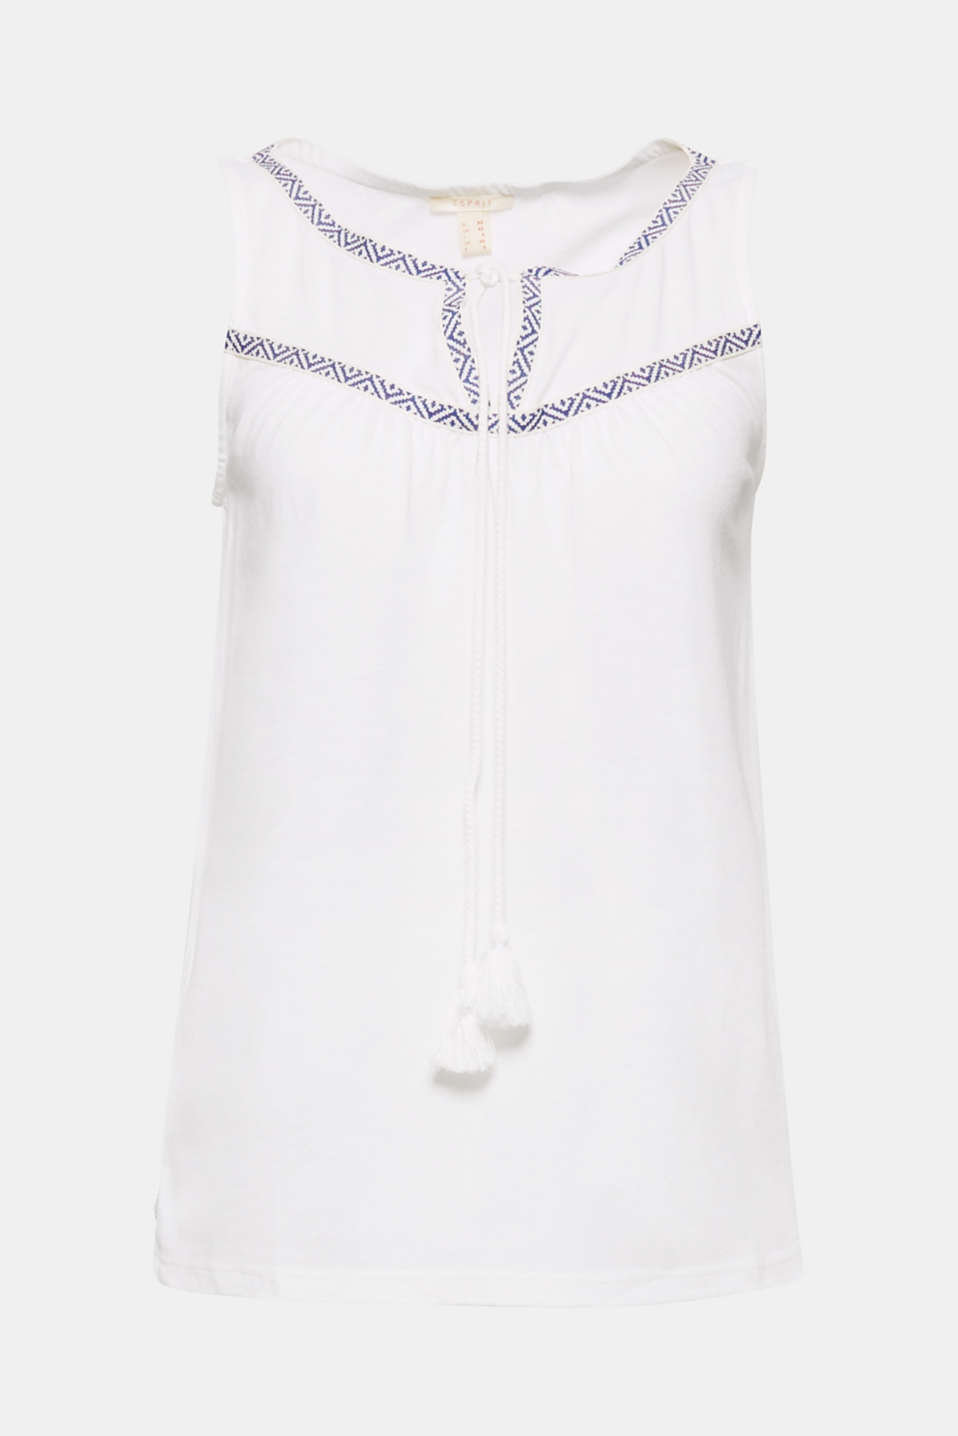 The decorative borders and tassels give this lightweight jersey top its on-trend ethnic look!